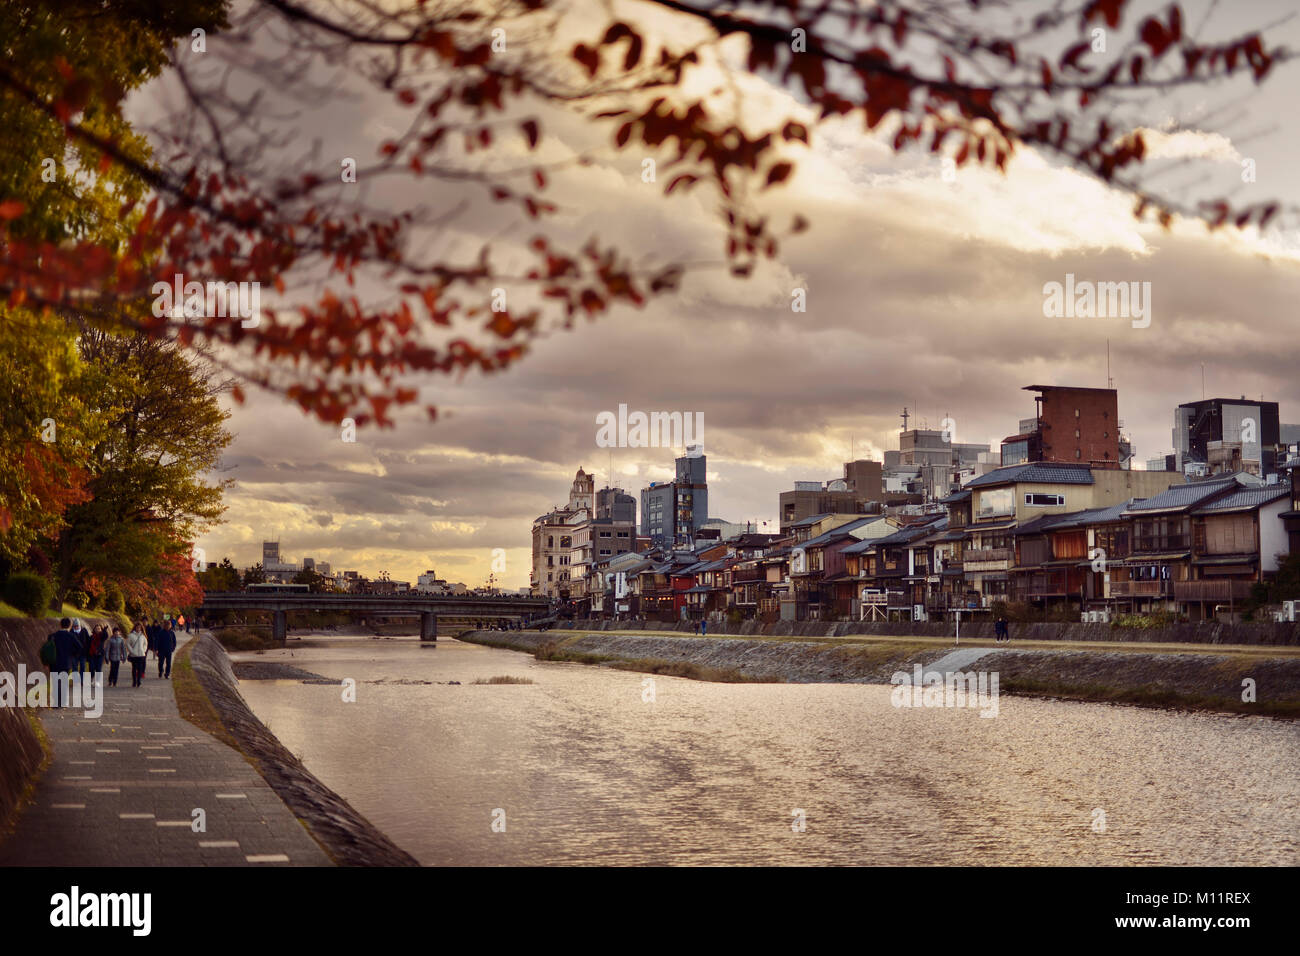 Pathways along Kamo River, Kamo-gawa, with Shijoo bridge in the background in a beautiful dramatic autumn sunset Stock Photo